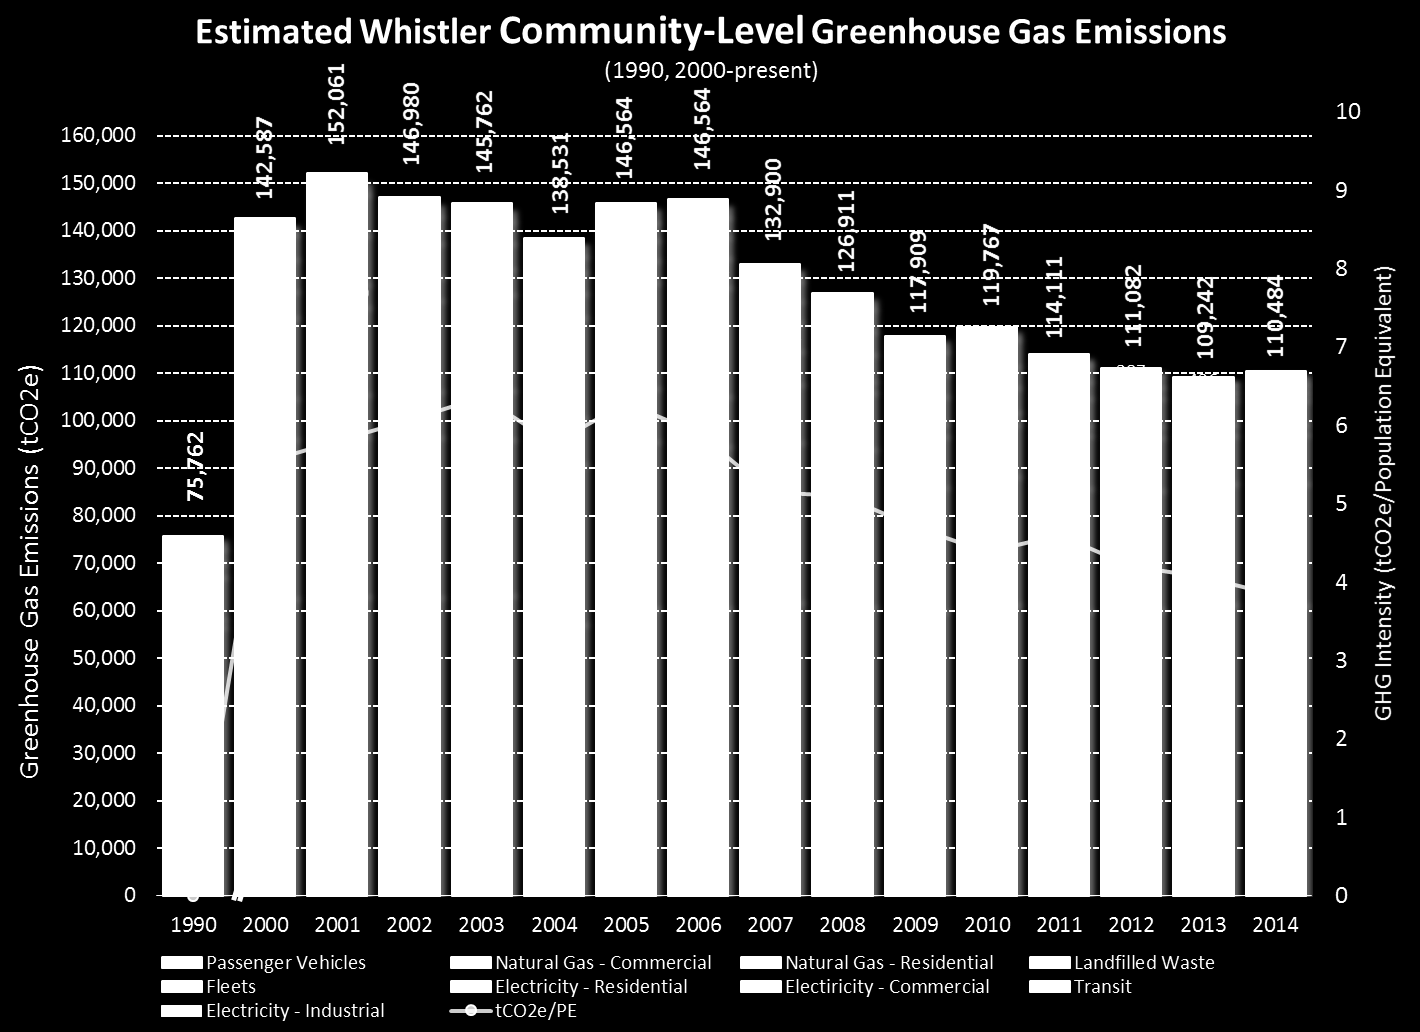 3.1.2 Community GHG Emission Performance Total community emissions in 2014 were estimated to be 110,500 tco2e. This level is approximately 16.9% lower than 2007 levels, 22.